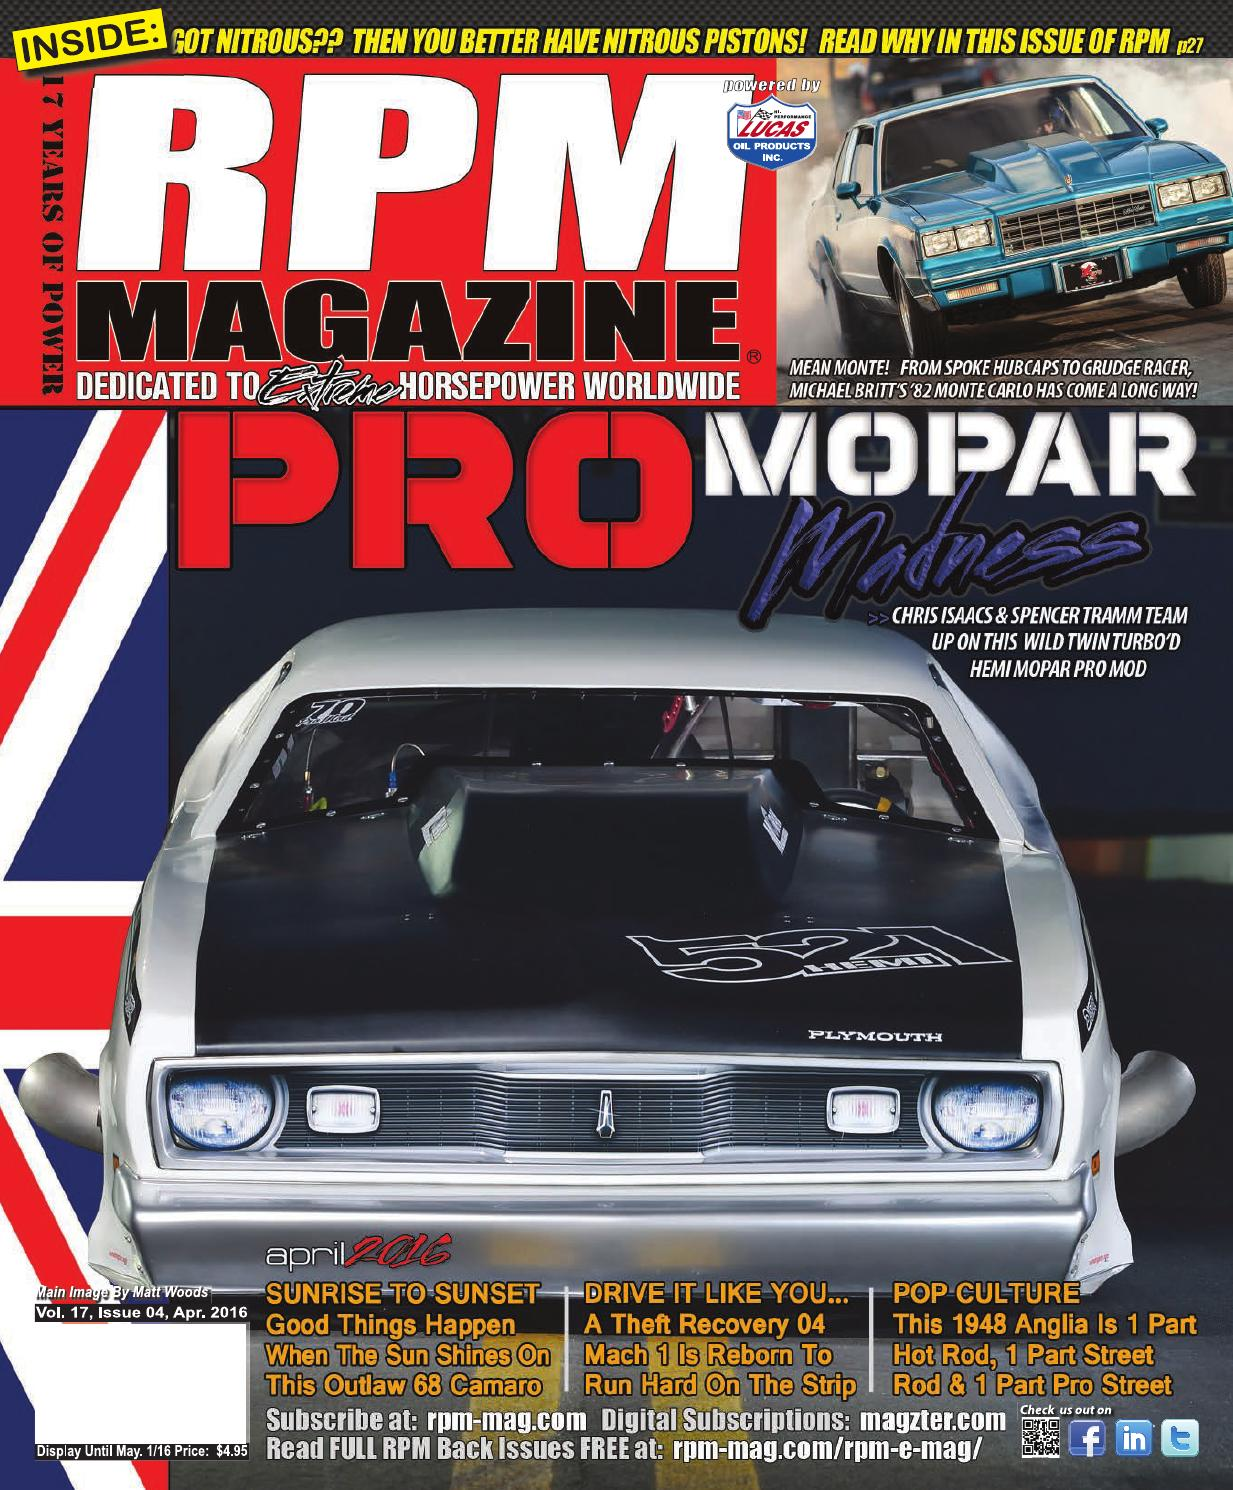 RPM Magazine April 2016